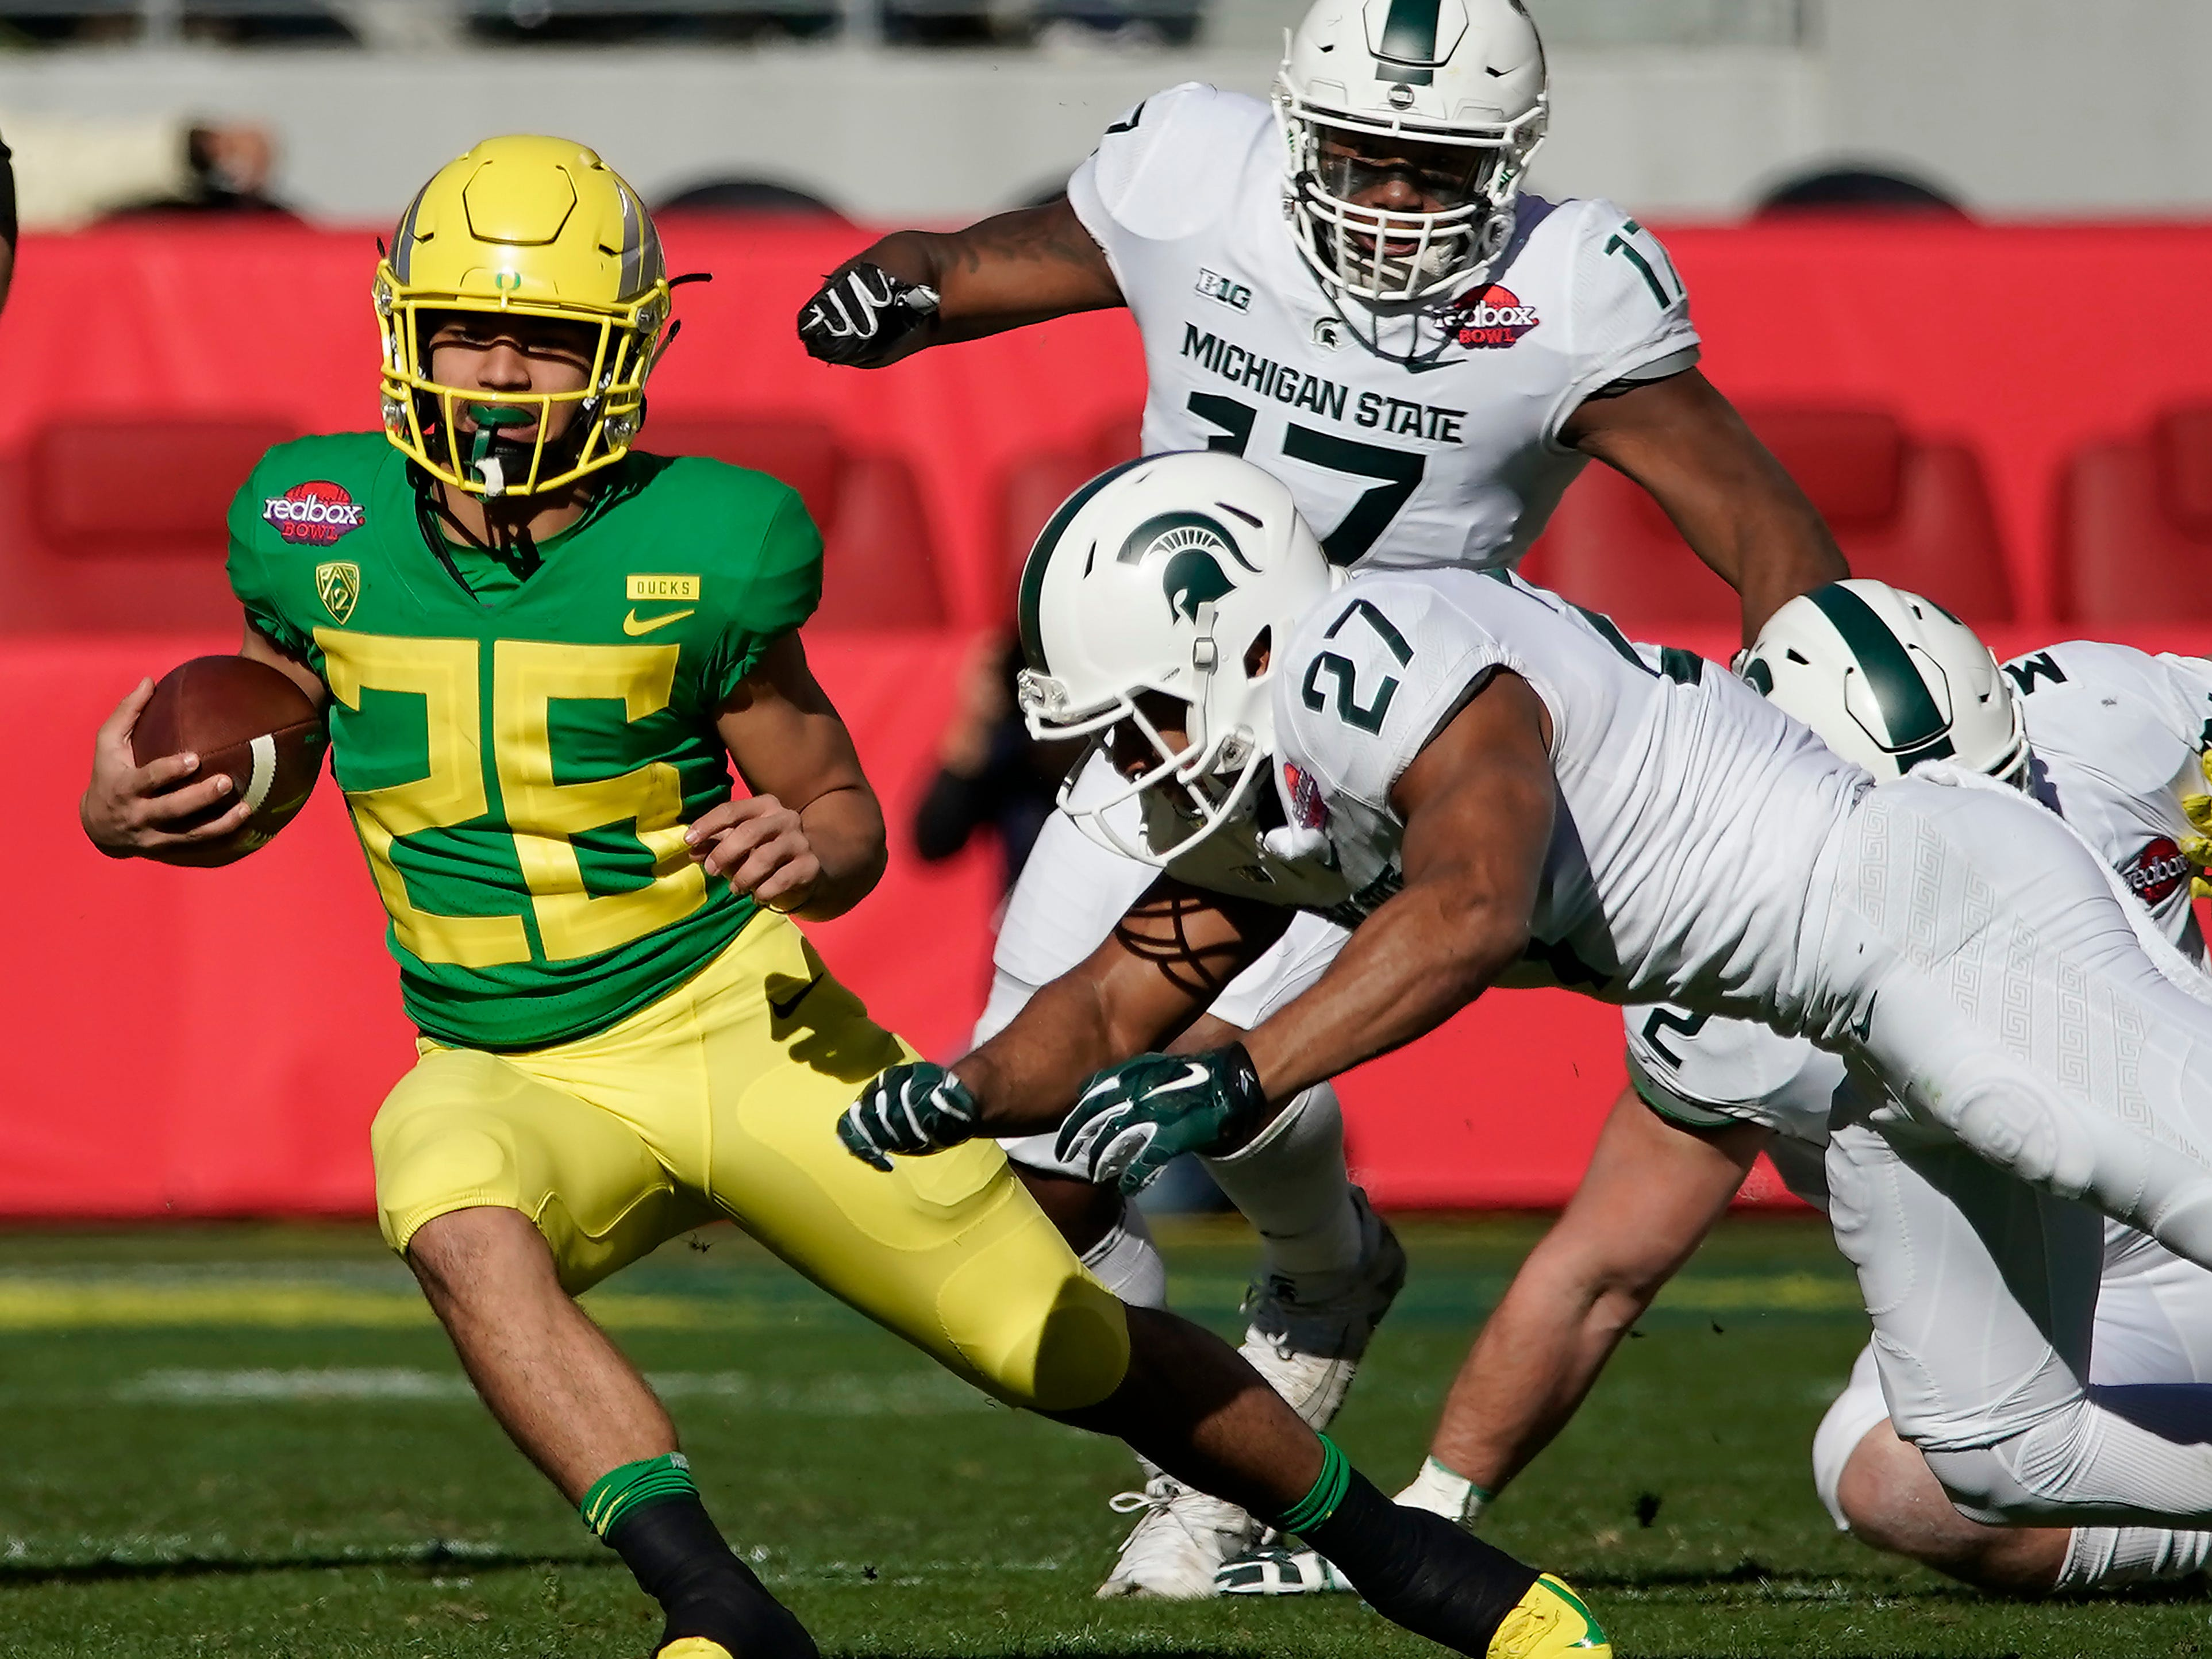 Oregon Ducks running back Travis Dye (26) rushes for a first down past Michigan State Spartans safety Khari Willis (27) during the first half of the Redbox Bowl NCAA college football game Monday, Dec. 31, 2018, in Santa Clara, Calif.